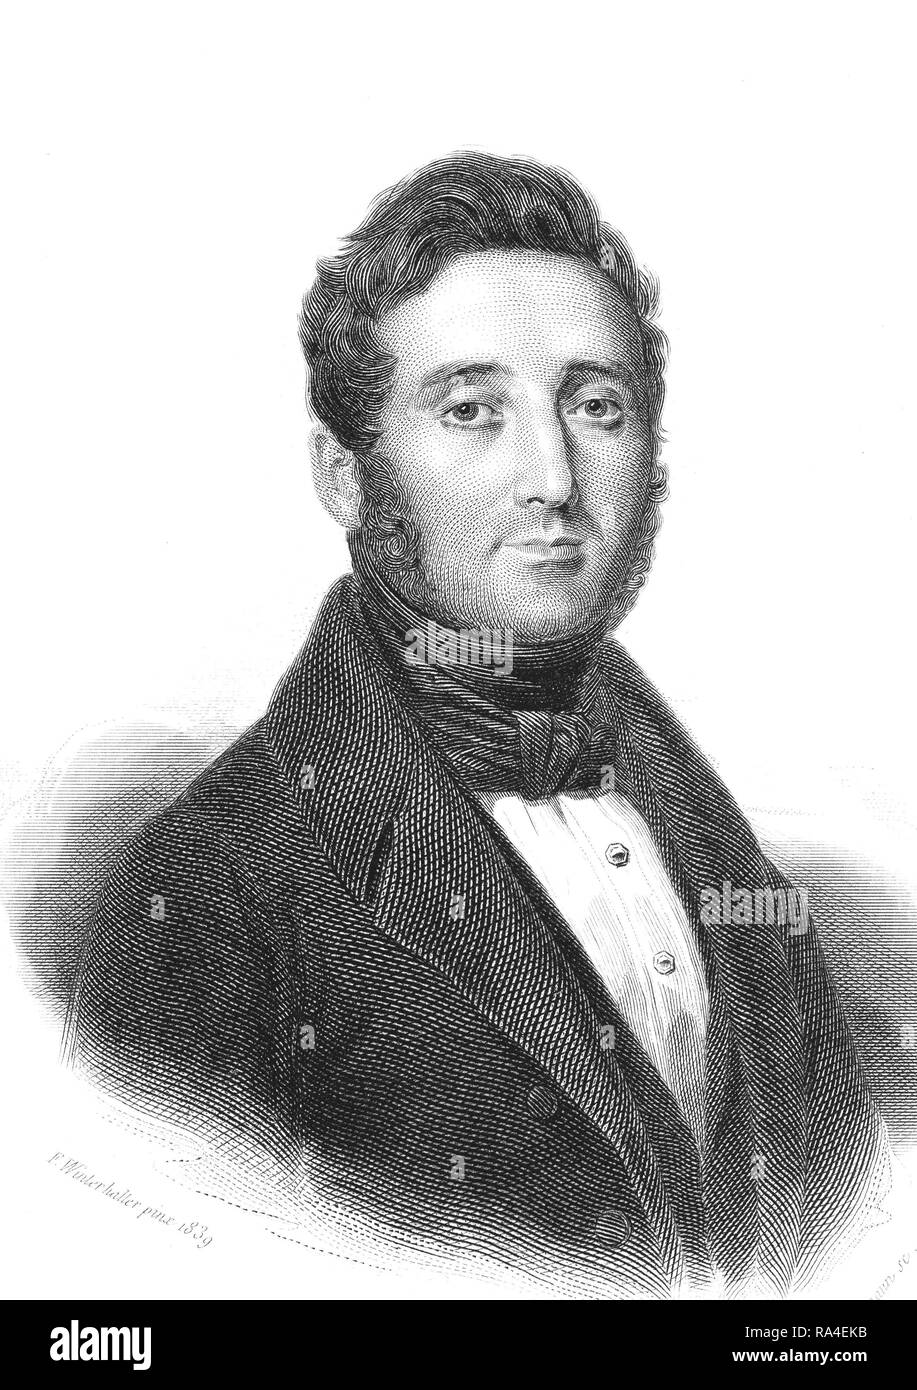 Pierre Amedée Jaubert, 1779-1847, french explorer and orientalist, 1844, France - Stock Image